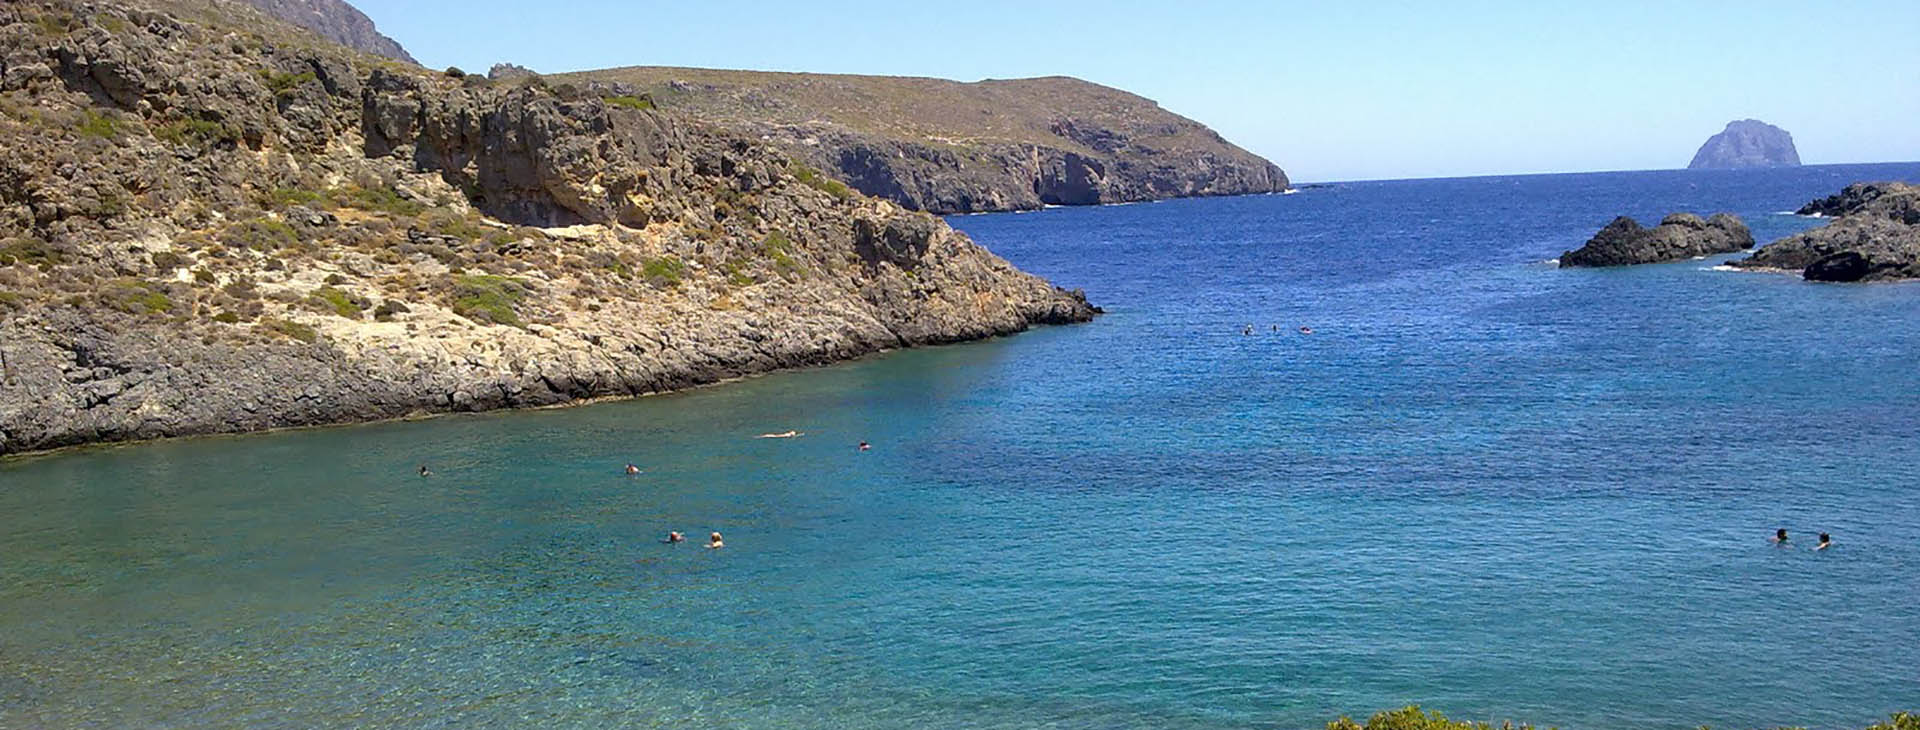 View of the islet Hytra from Melidoni beach, Kythira island